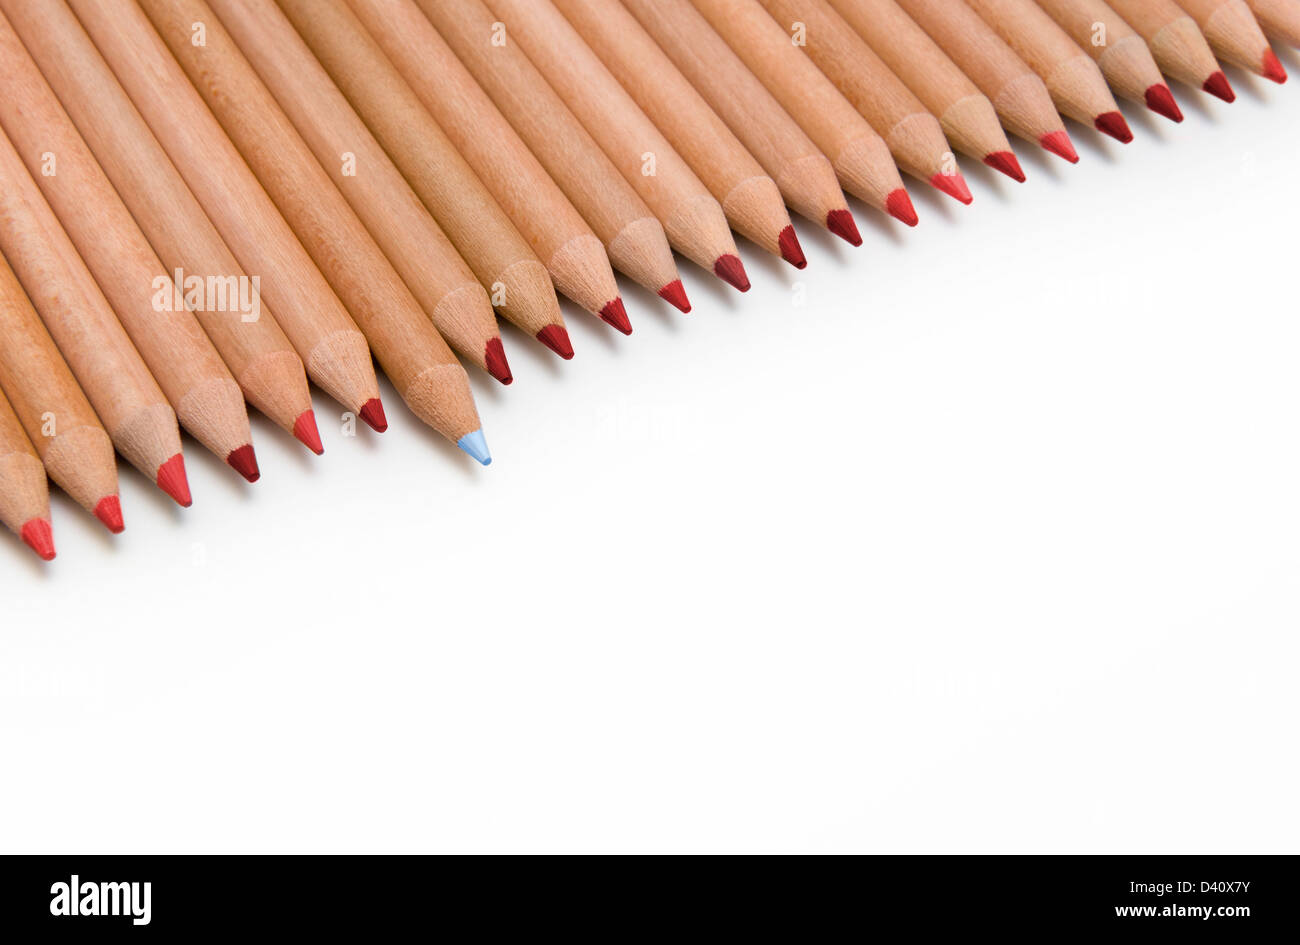 Line of red colouring pencils with one blue pencil sticking out - difference concept - Stock Image